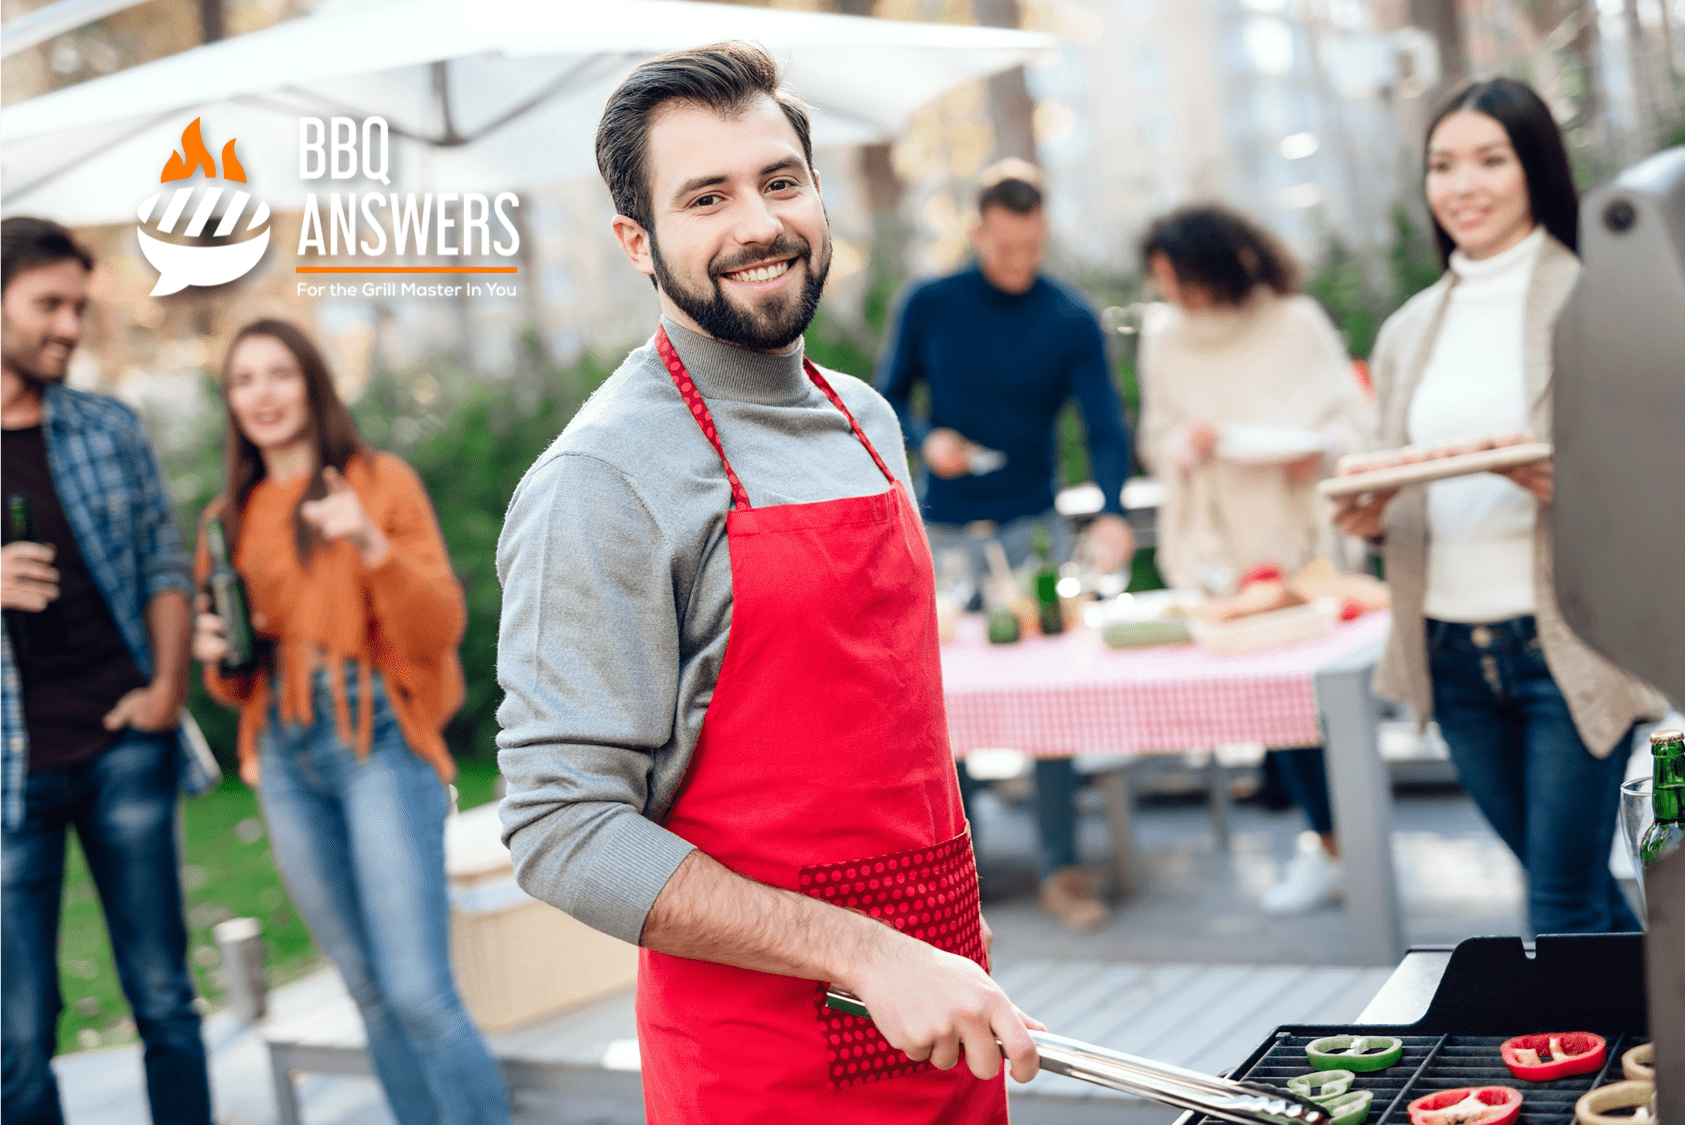 Outdoor BBQ   Portability   Electric Grill vs Gas Grill   BBQanswers